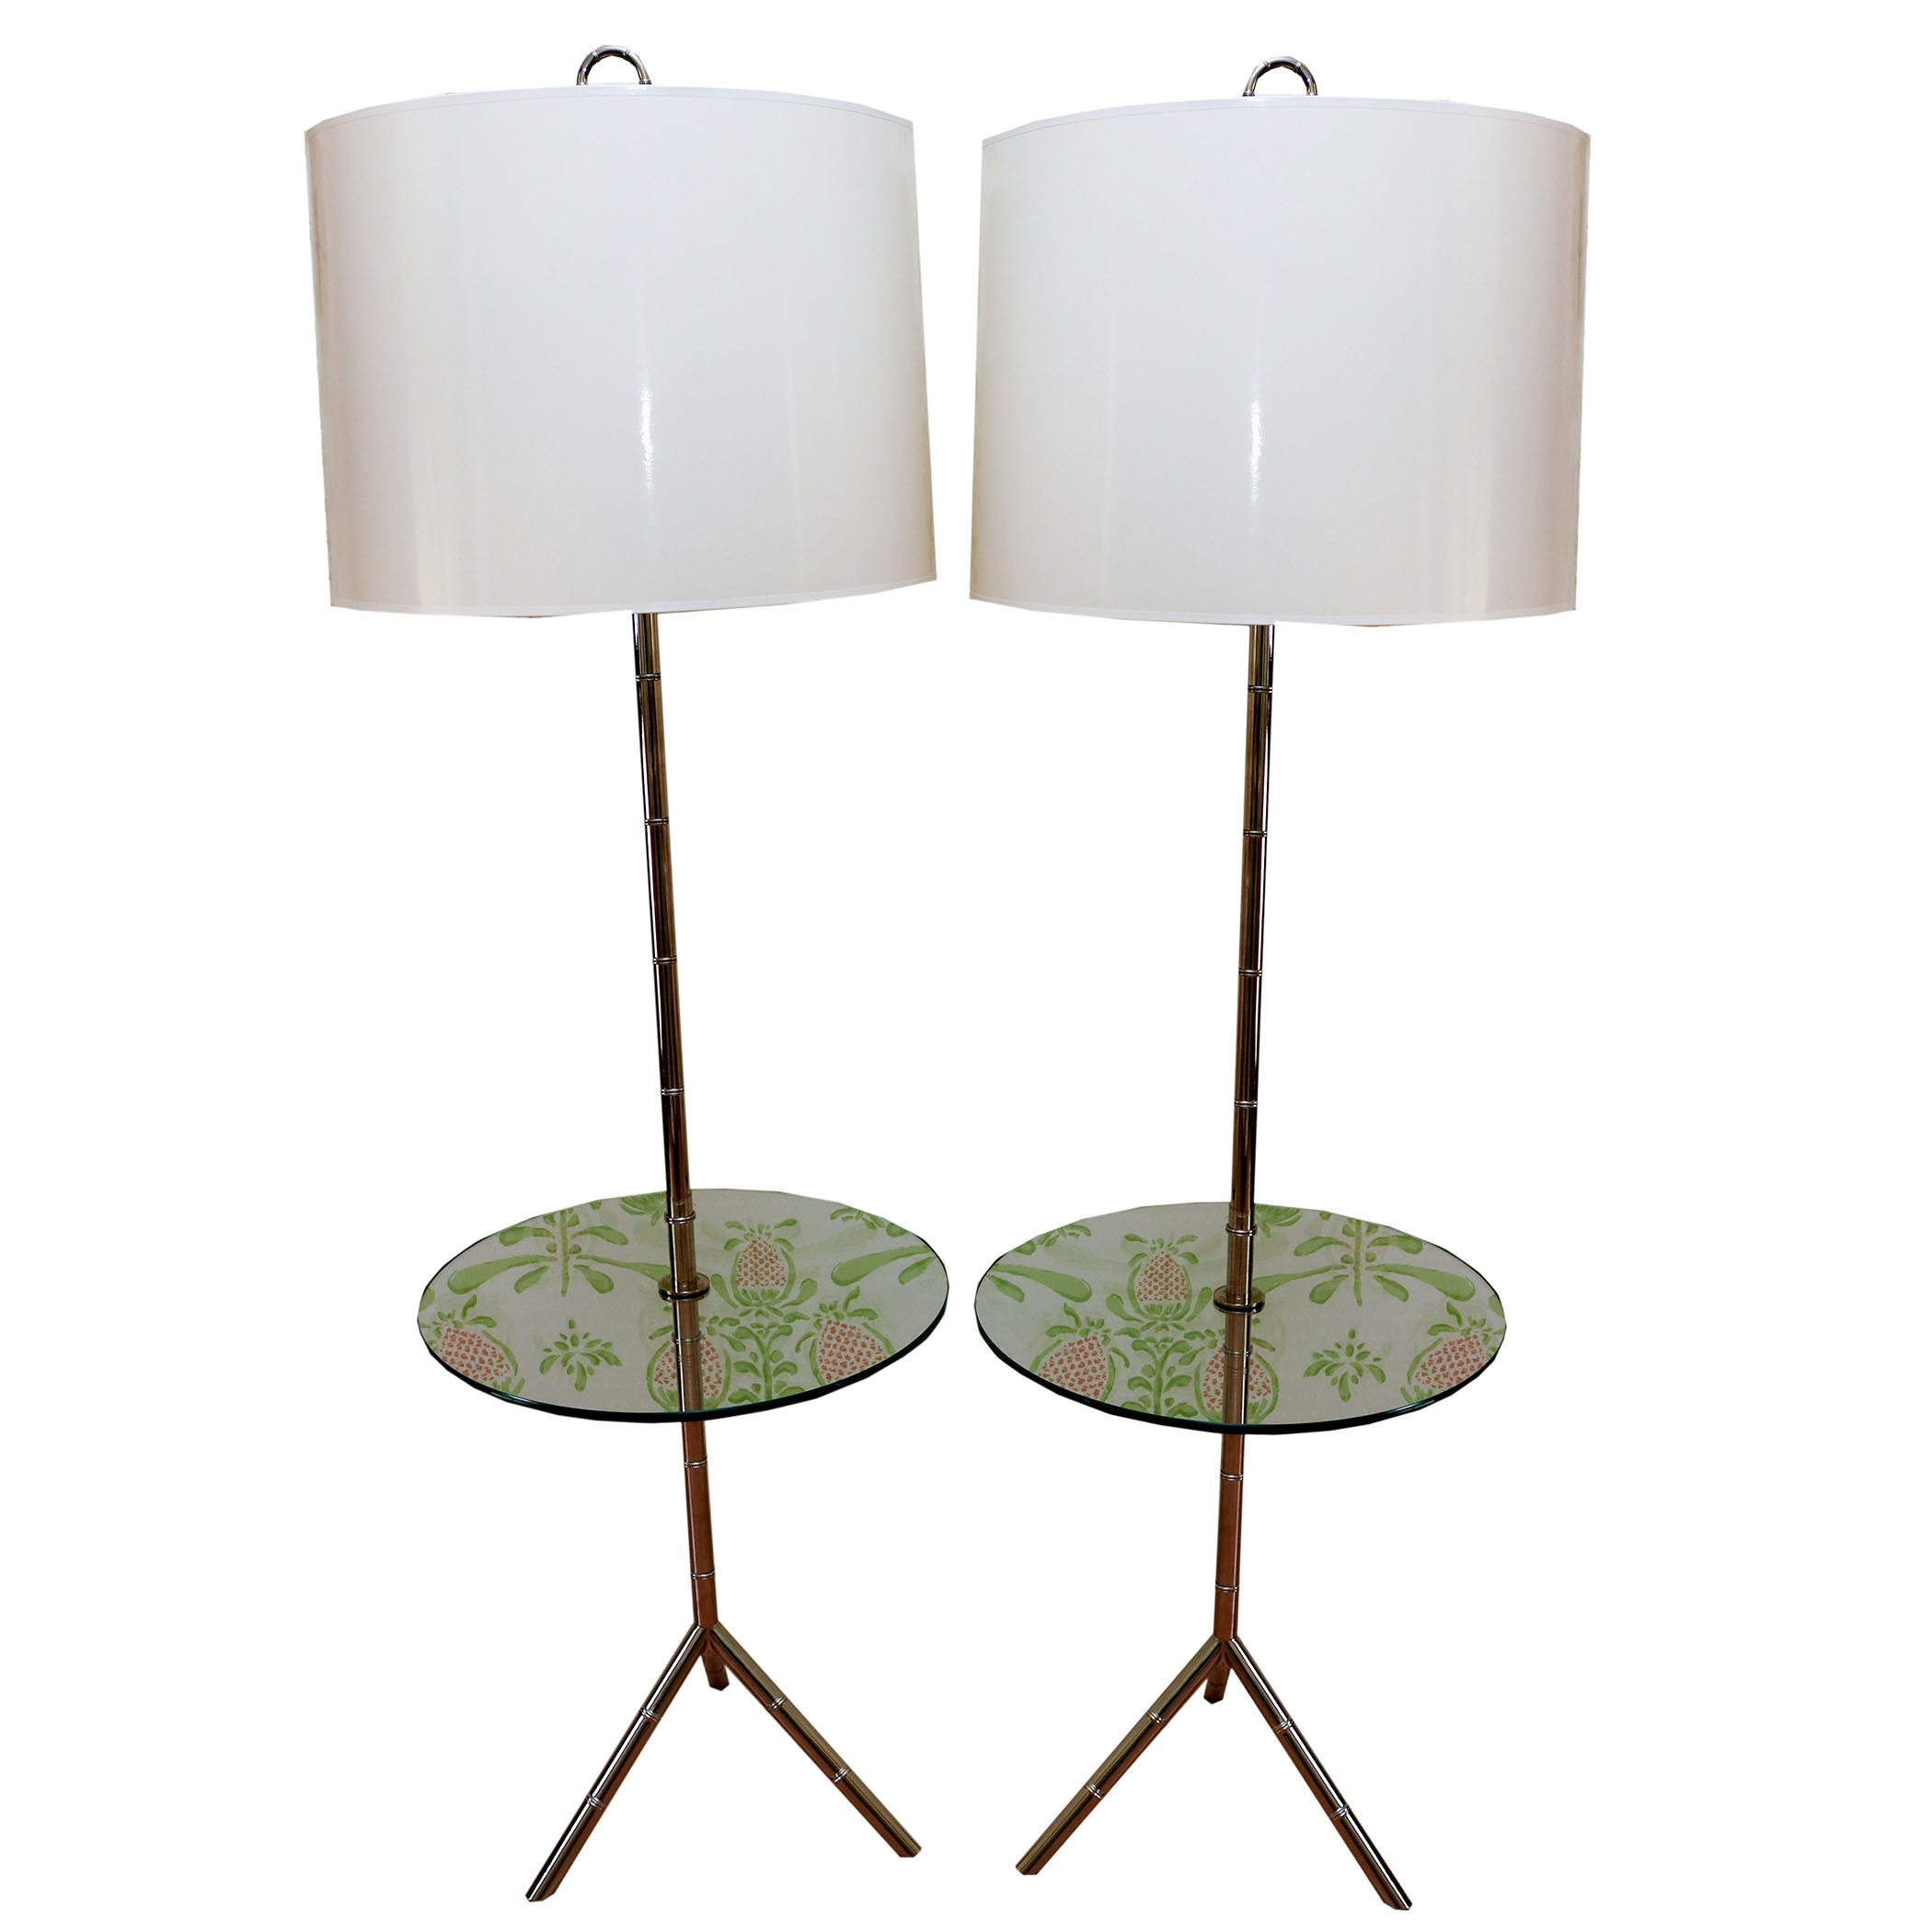 Floor Lamps with Table Accents